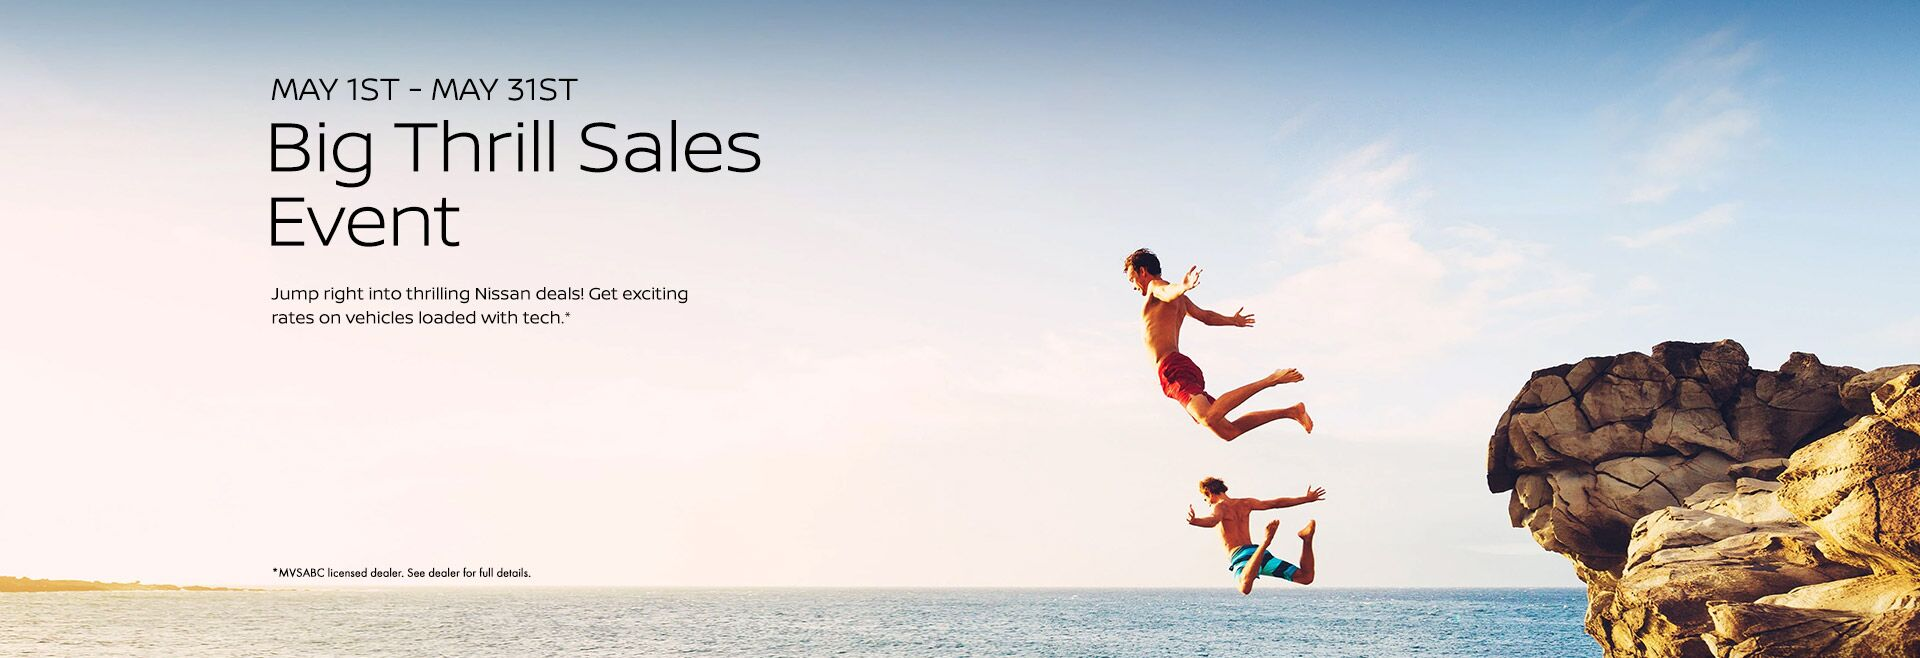 May Thrills Sales Event